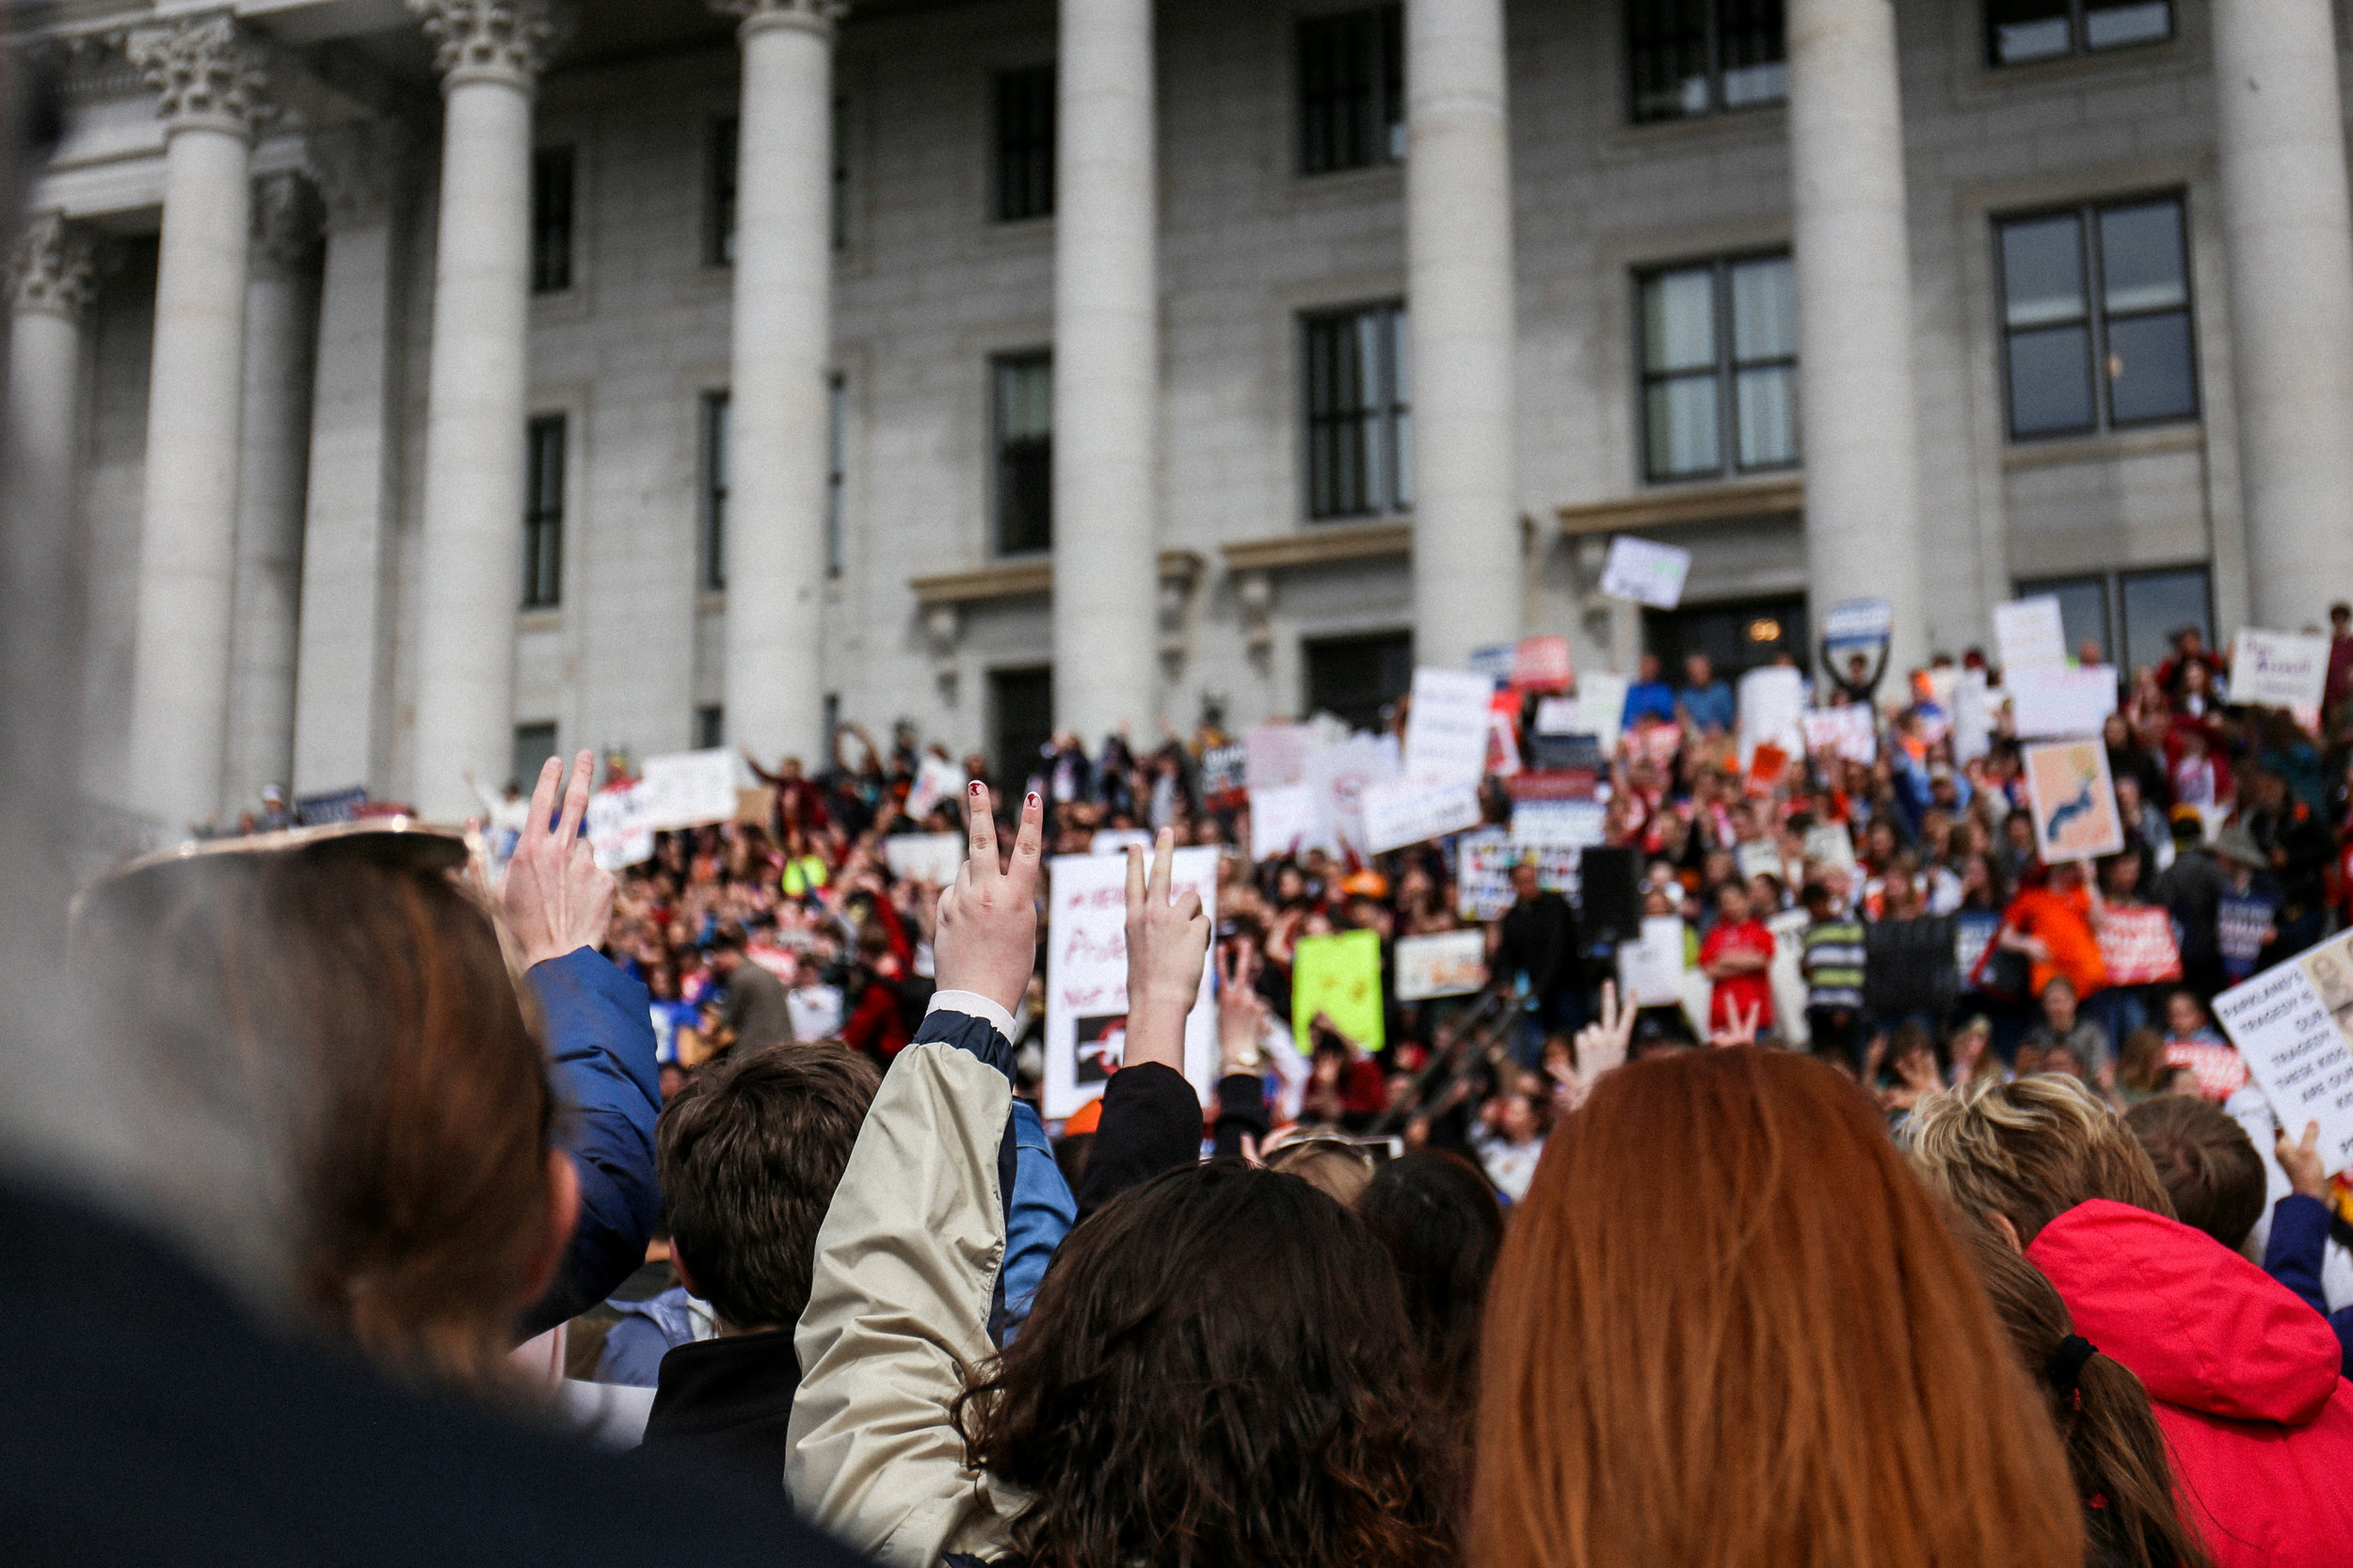 THE CAUSE - March For Our Lives Utah is the state chapter of March For Our Lives, a student-led gun violence prevention and public safety movement that began after the mass shooting at Marjory Stoneman Douglas HS in Parkland, FL on February 14, 2018. Learn more about us here.